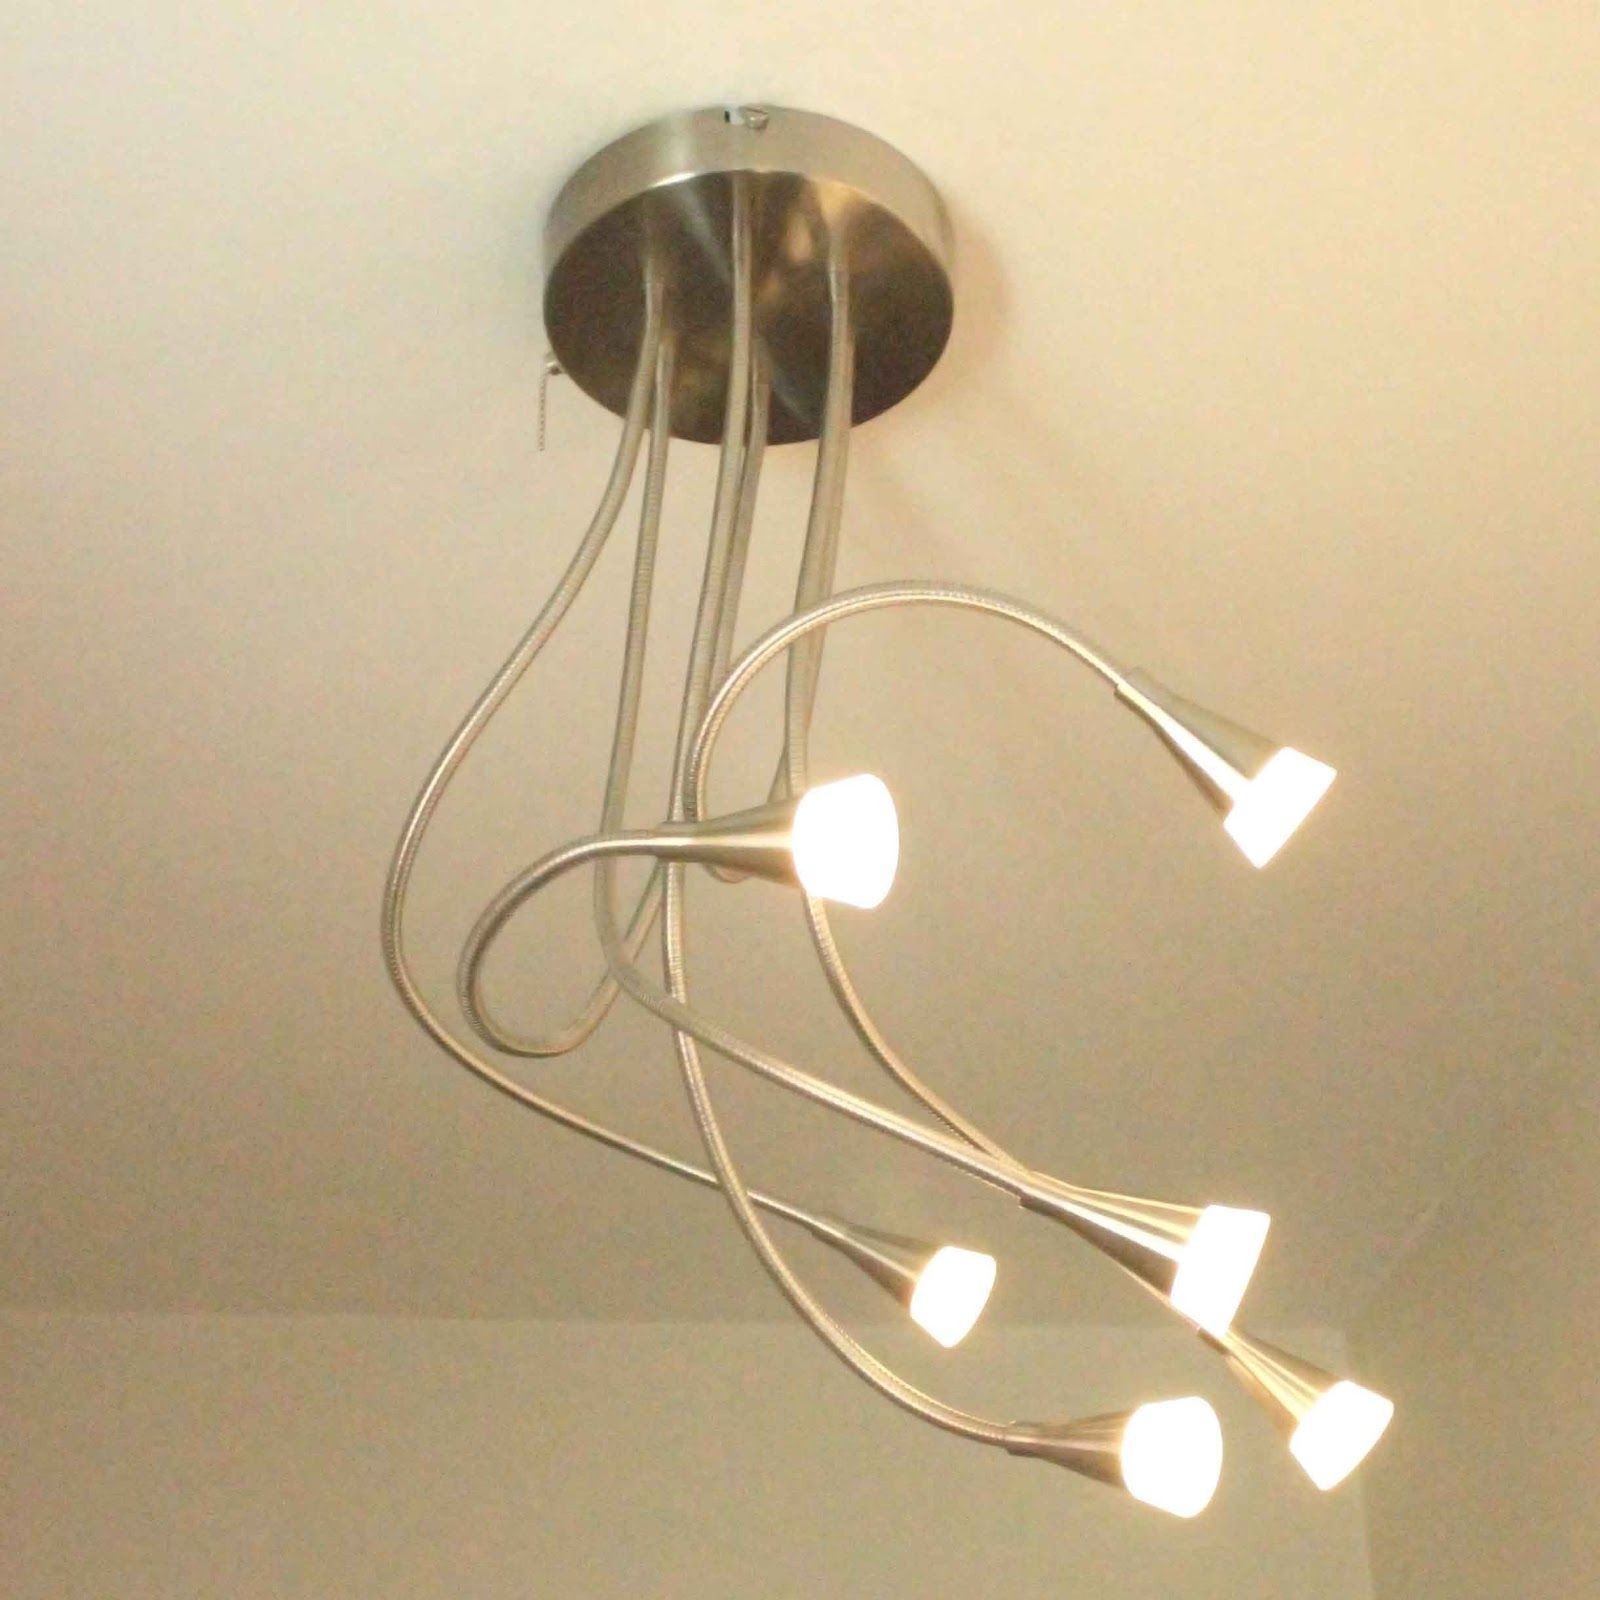 Led Ceiling Light With Flexible Arms Pull Chain Light Fixture Antique Light Fixtures Light Fixtures